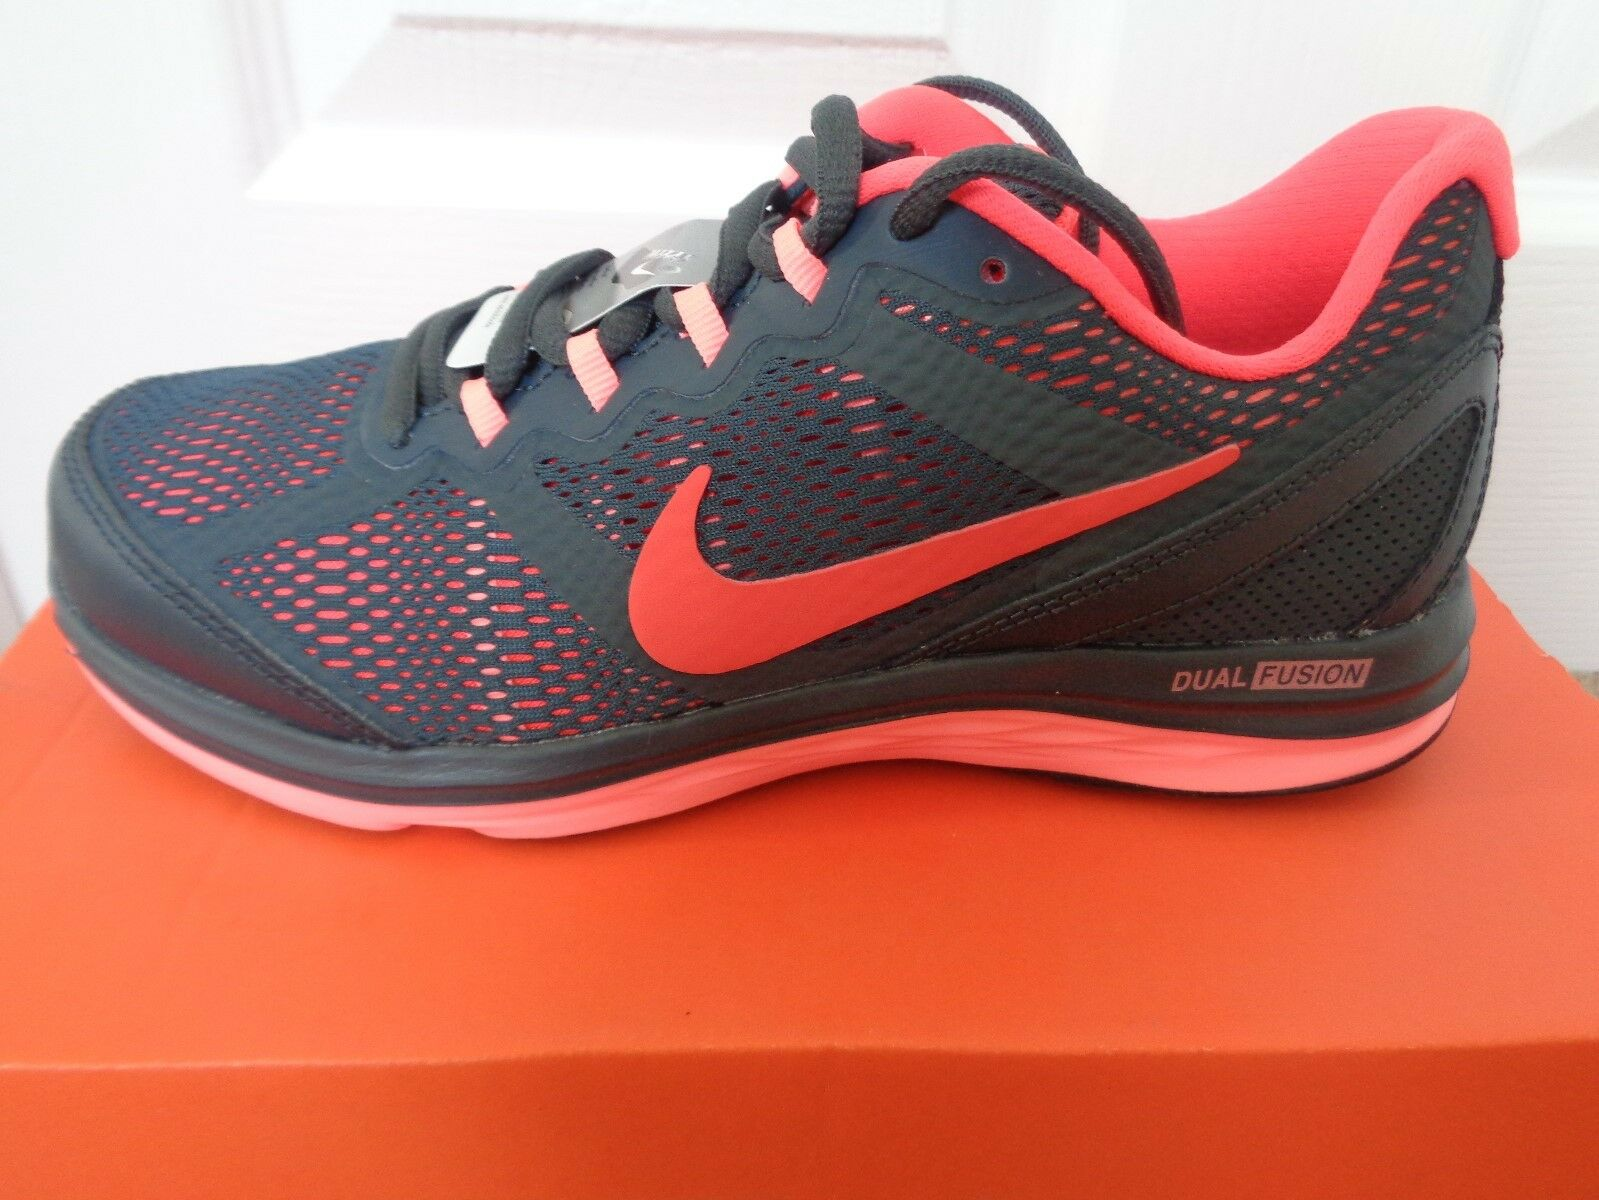 Nike Dual Fusion Run 3  Femme  trainers  chaussures  sneakers 653594 013 NEW+BOX